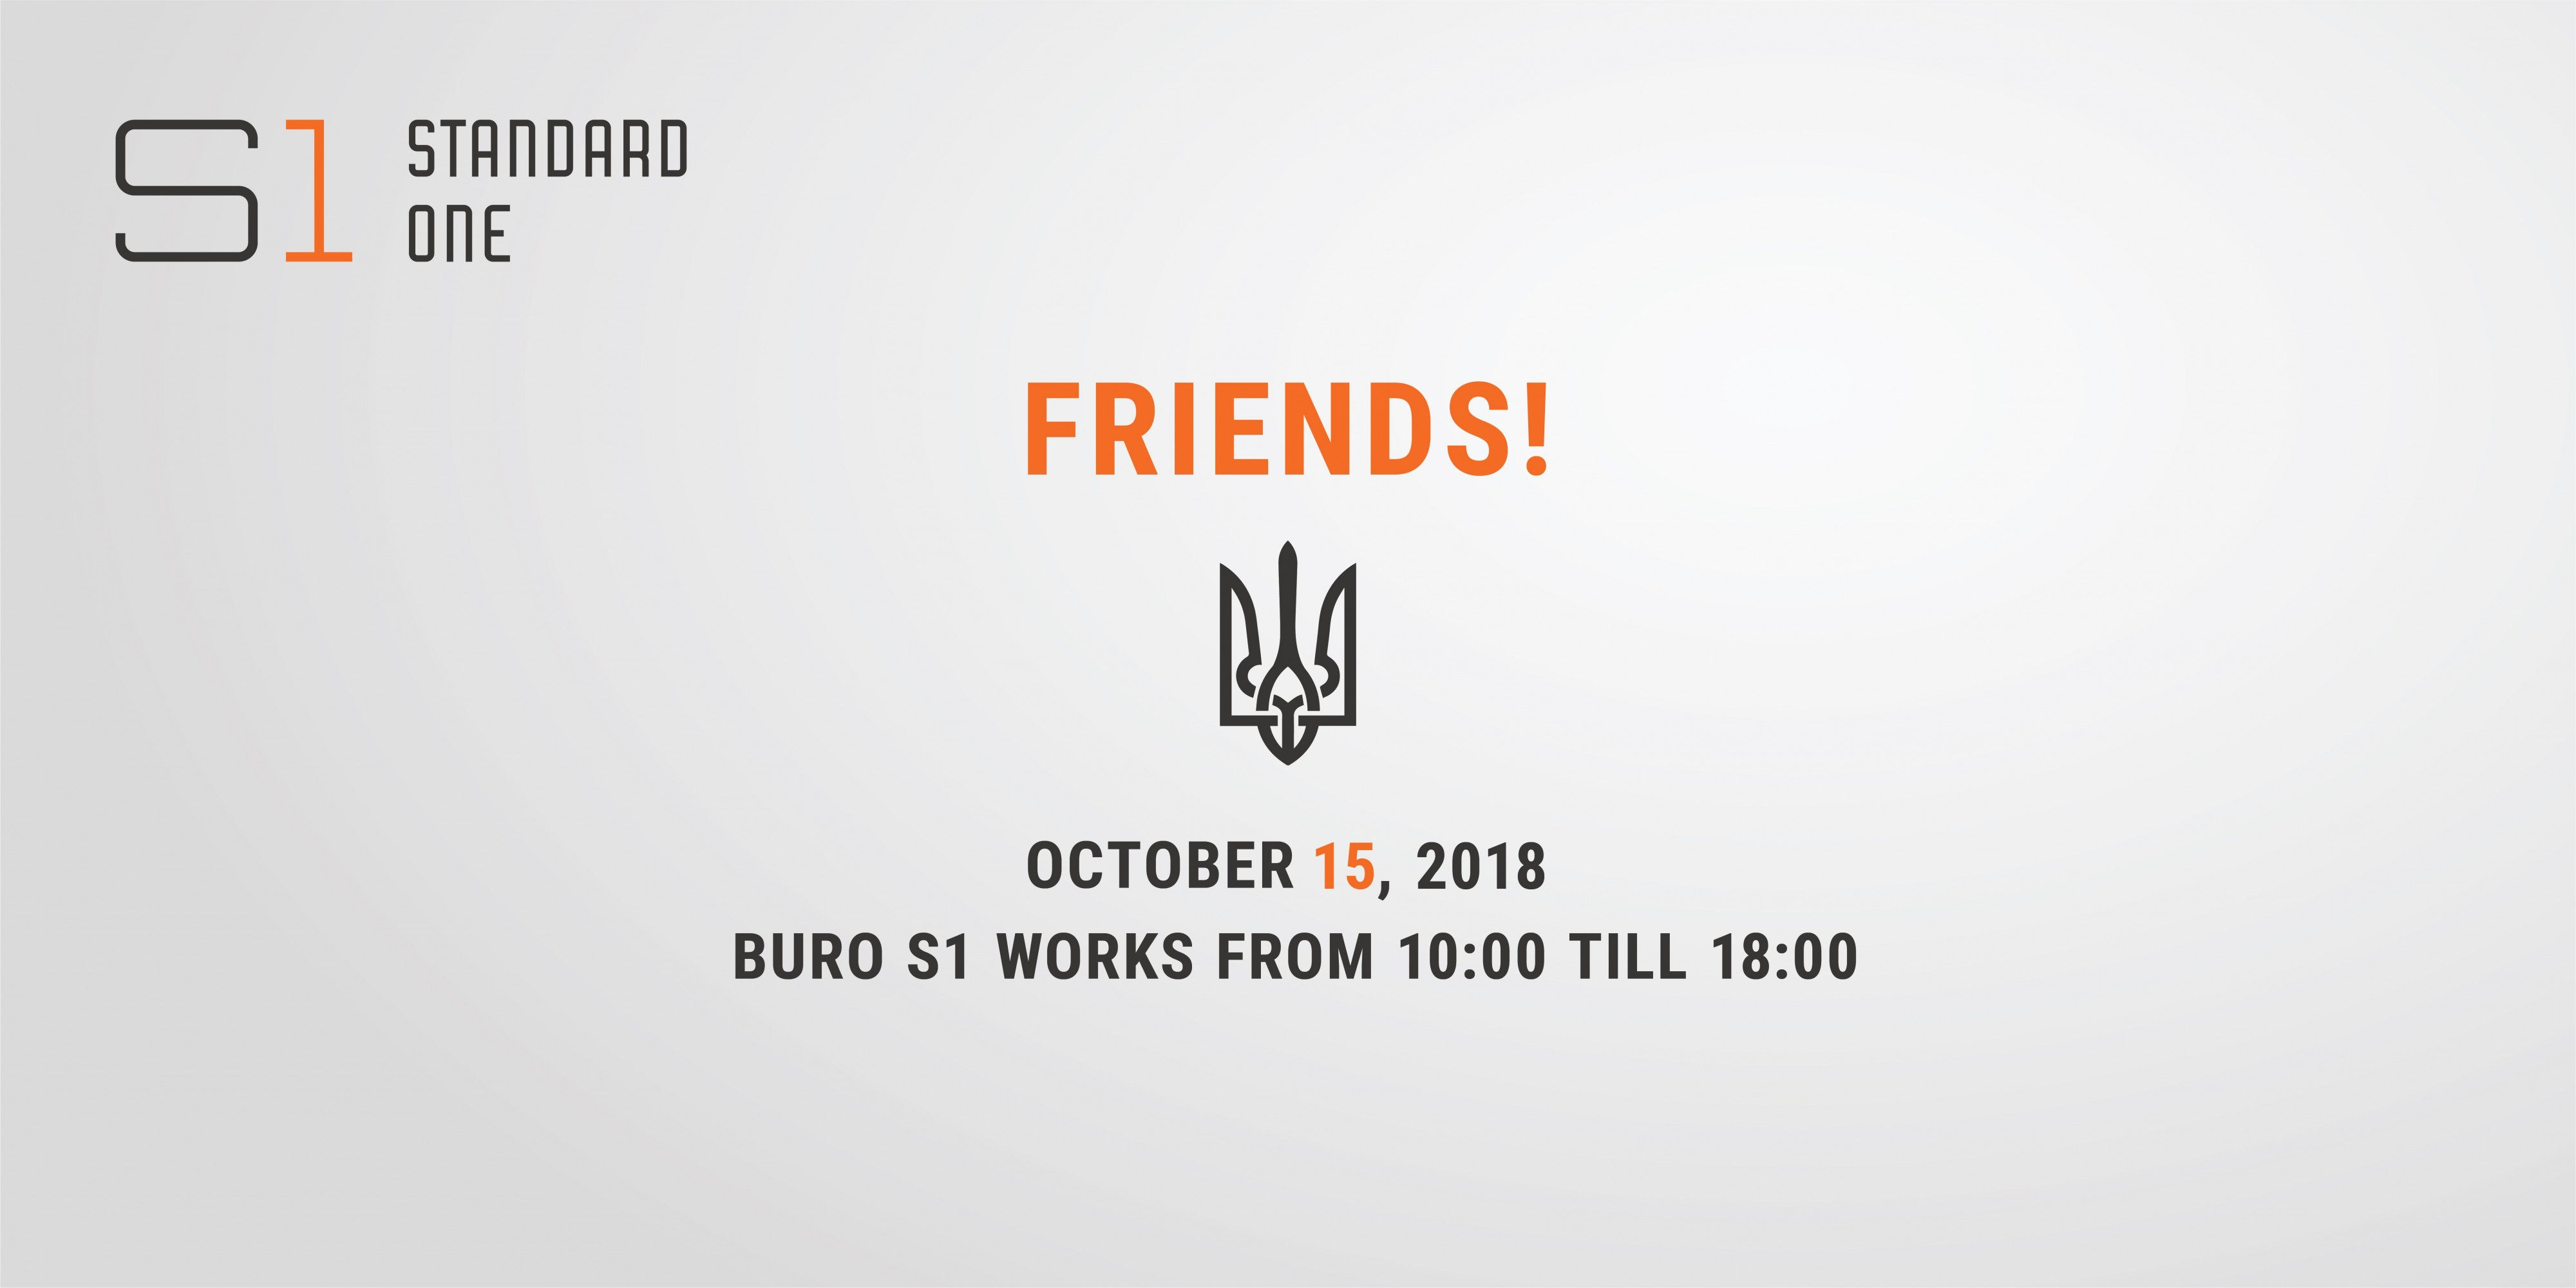 Changes in working schedule 15.10